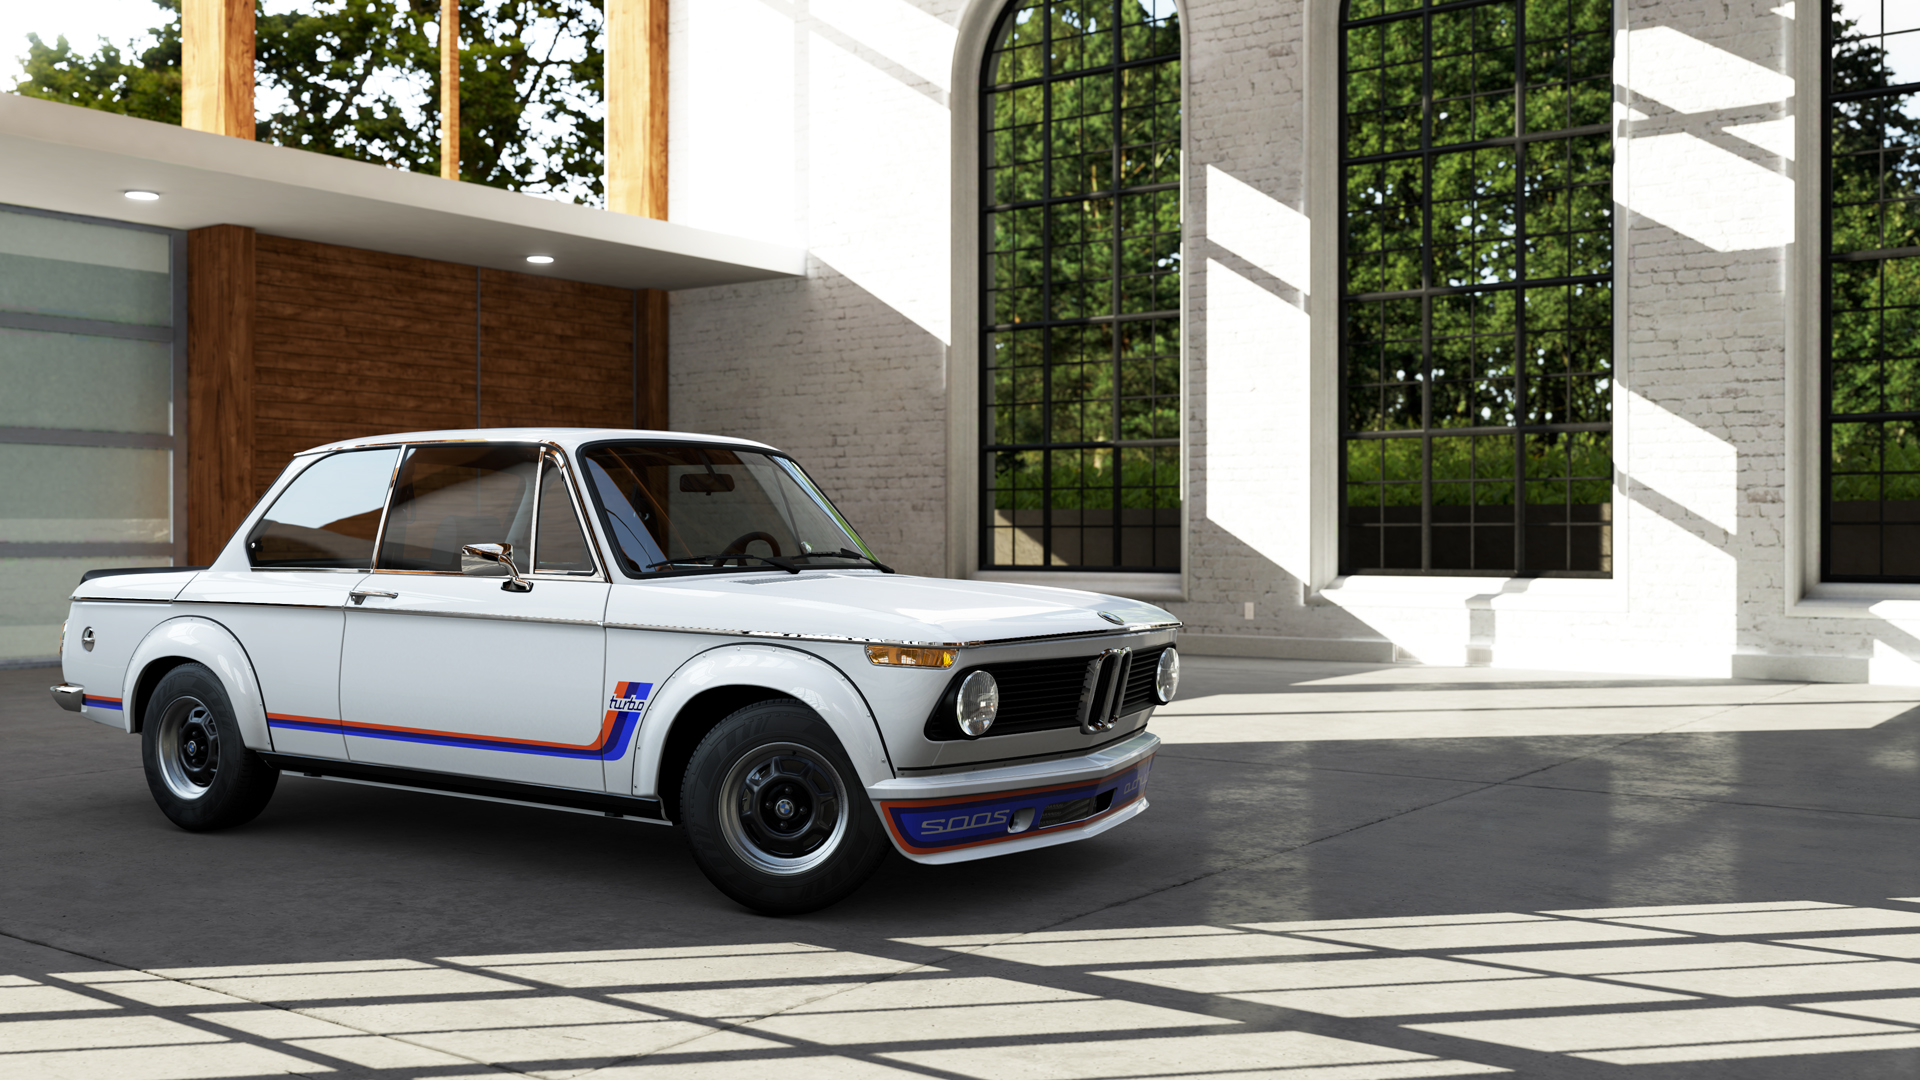 Bmw 2002 For Sale >> Forza Motorsport 5 - Cars